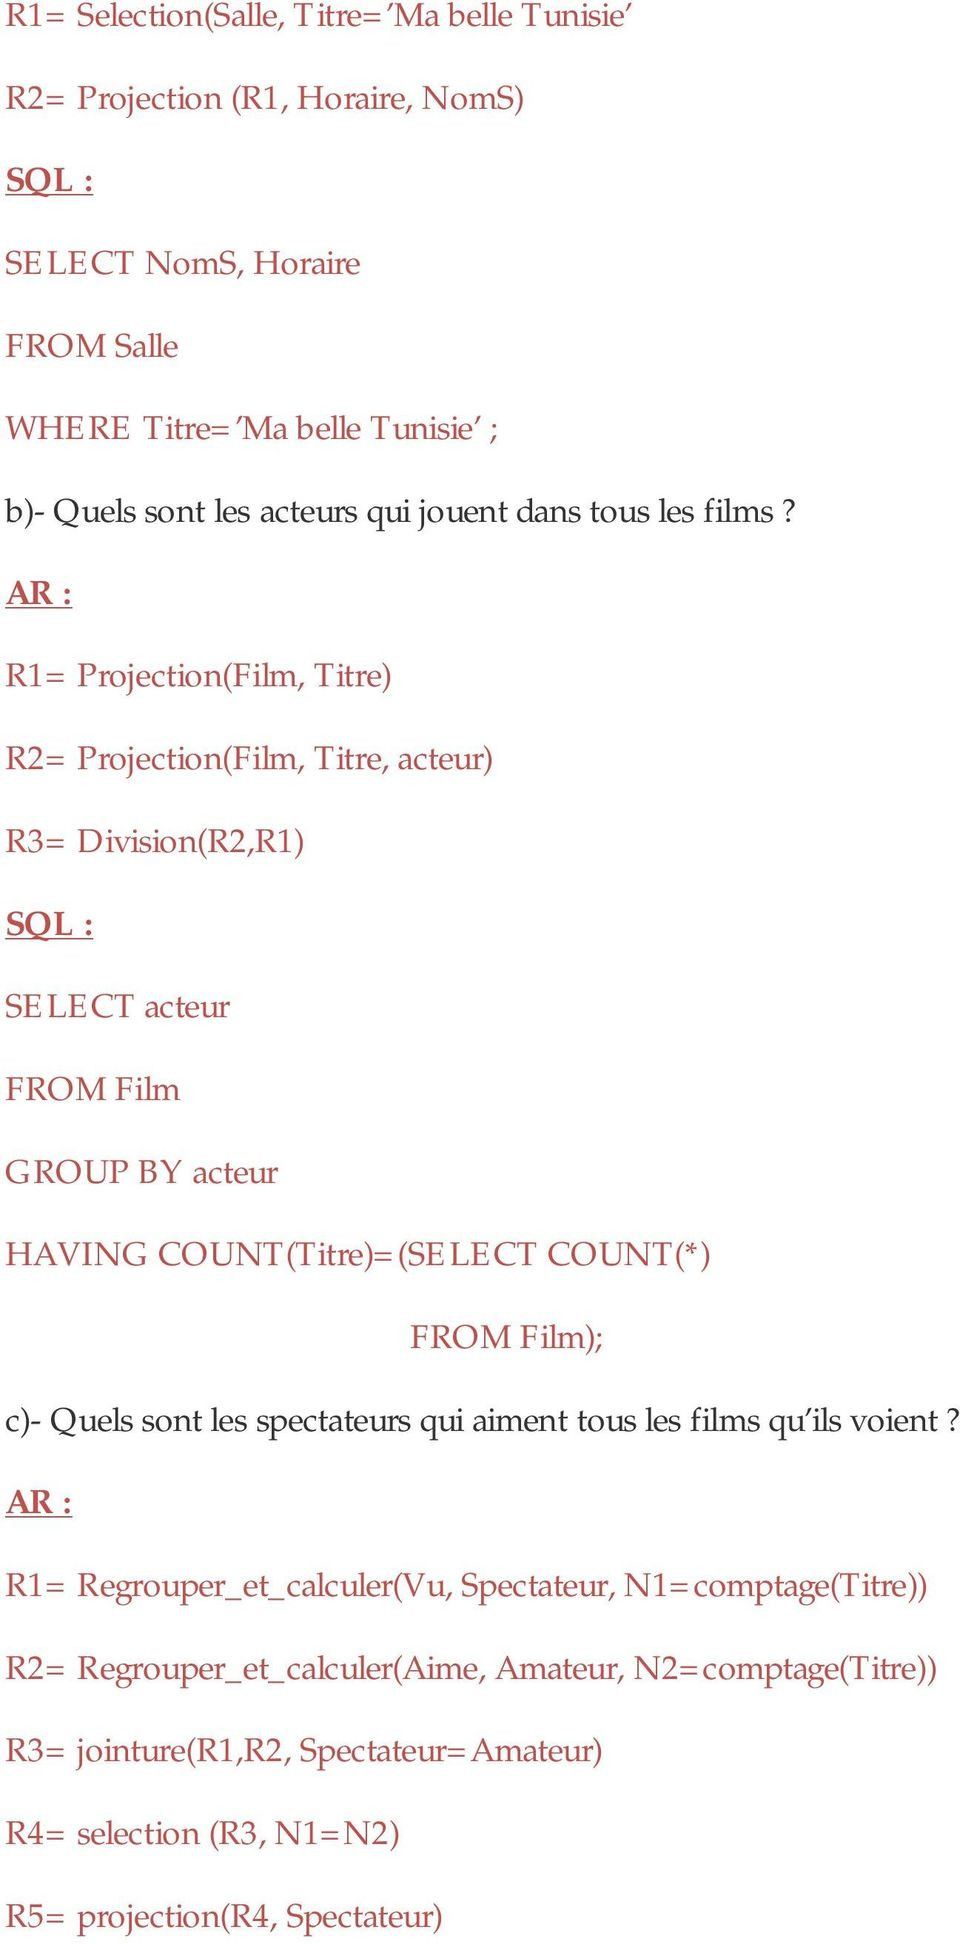 R1= Projection(Film, Titre) R2= Projection(Film, Titre, acteur) R3= Division(R2,R1) SELECT acteur FROM Film GROUP BY acteur HAVING COUNT(Titre)=(SELECT COUNT(*) FROM